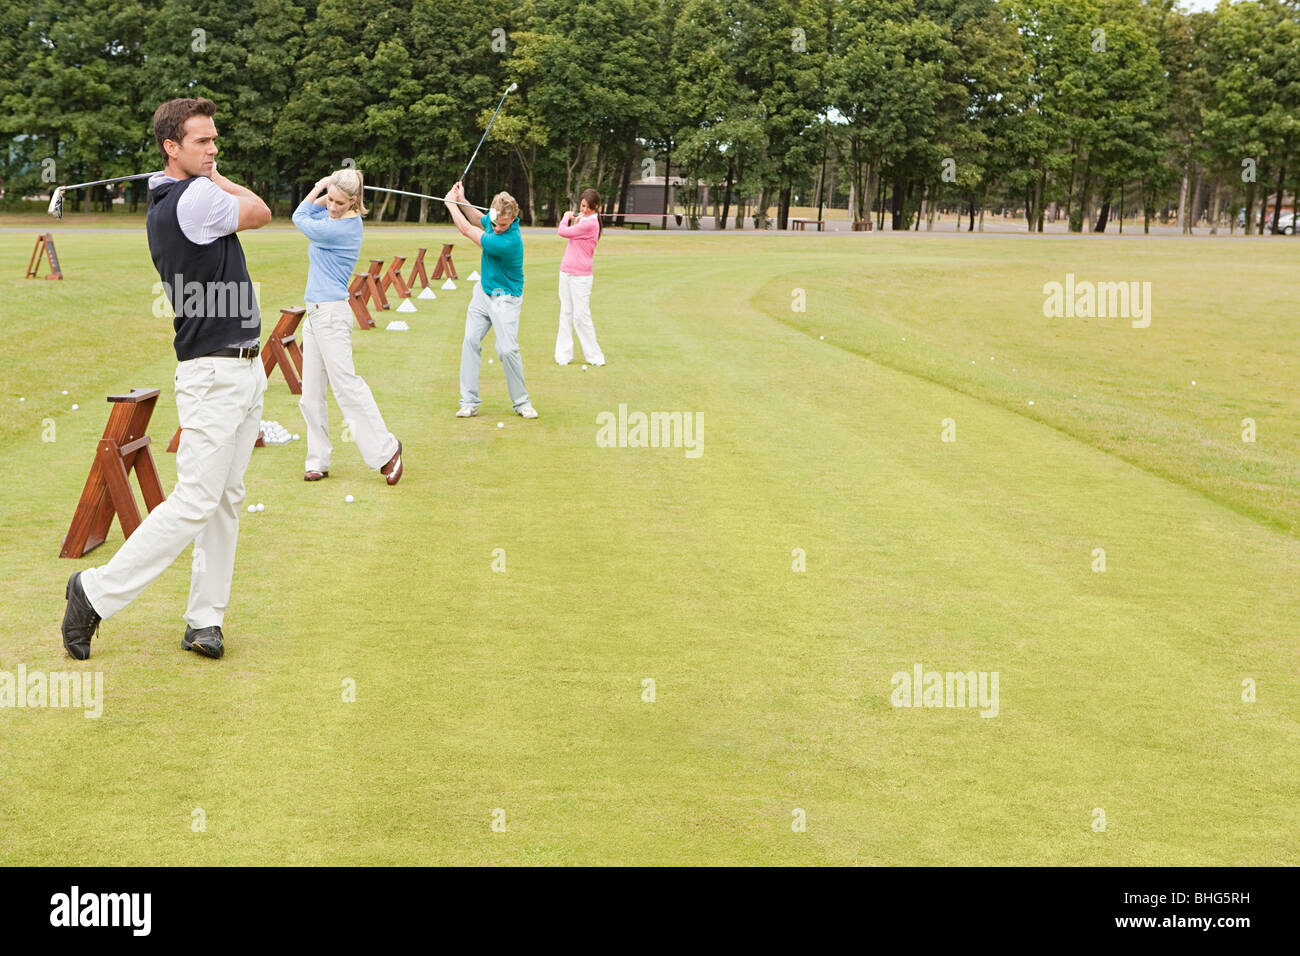 Four golfers on the driving range - Stock Image